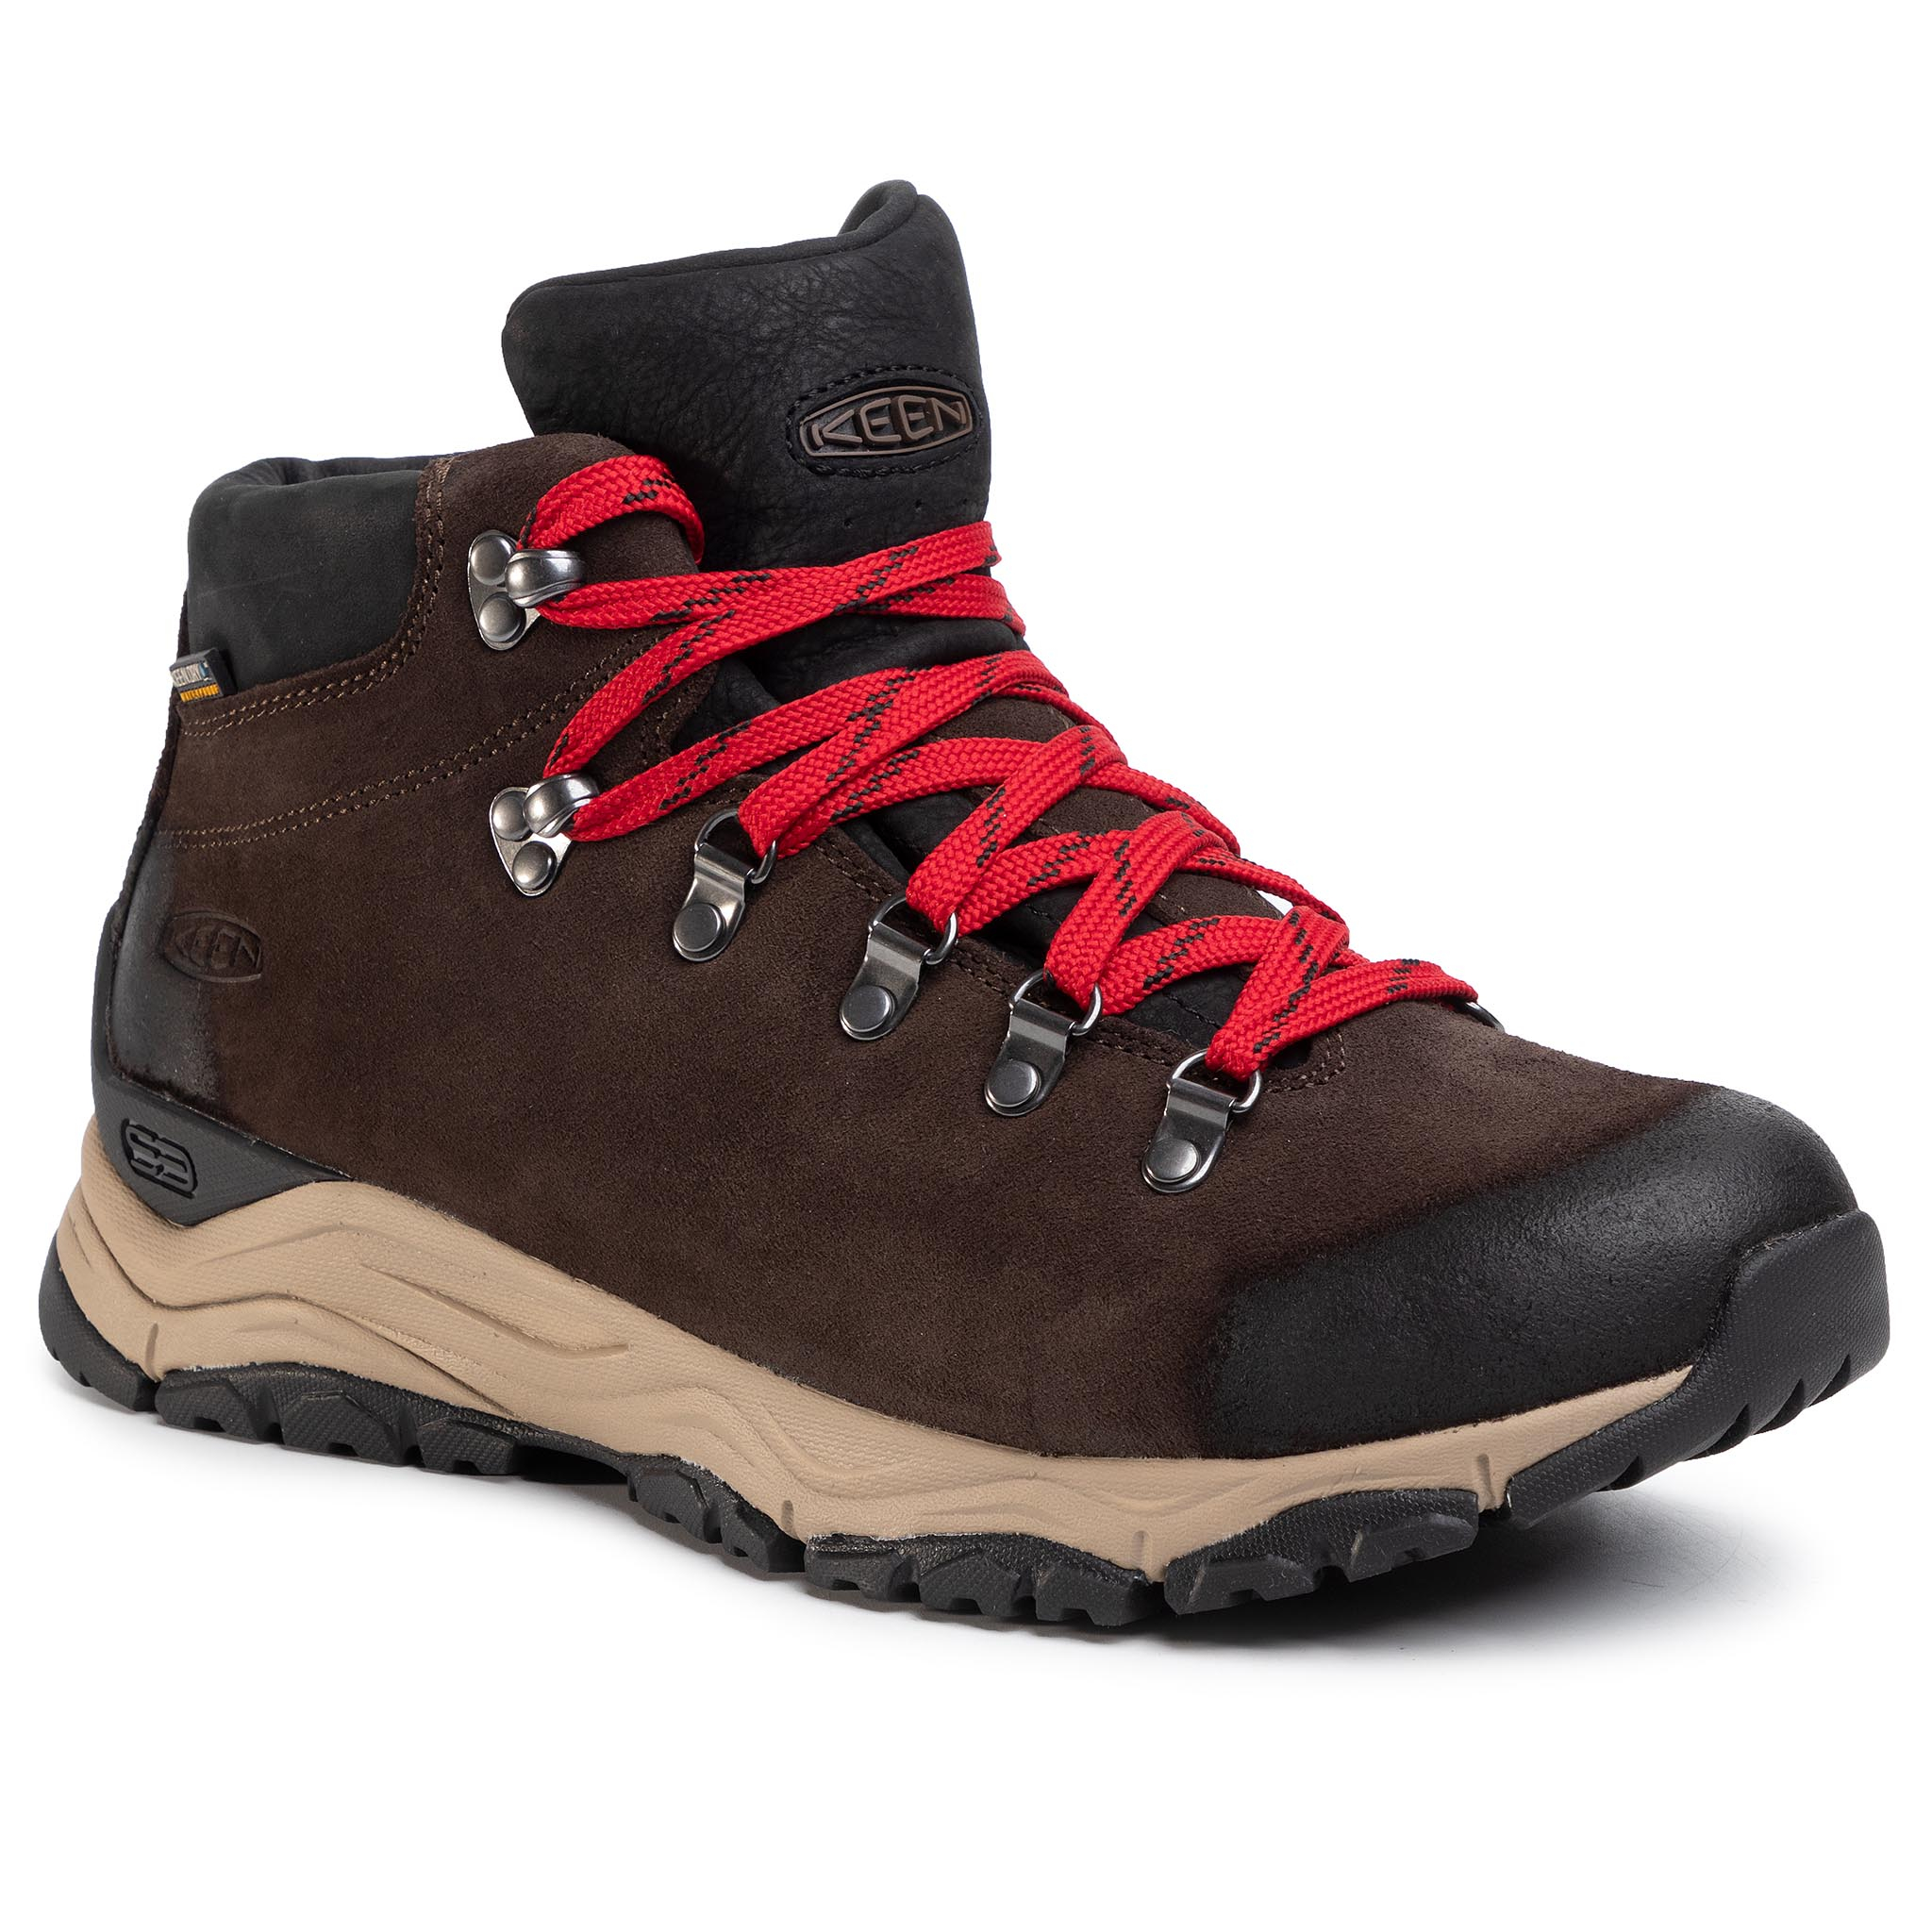 Trekkings Keen - Feldberg Apx Wp 1021601 Ebony/Brown imagine epantofi.ro 2021